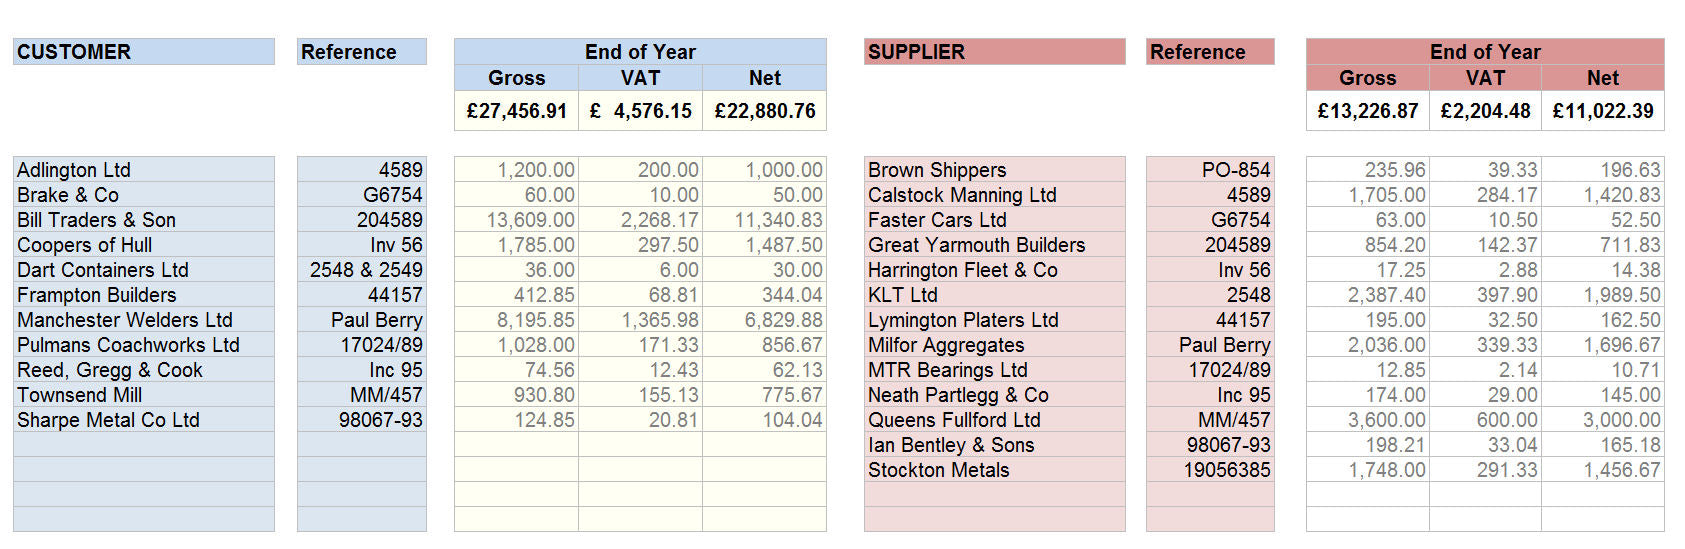 Accounting Spreadsheet for Debtors